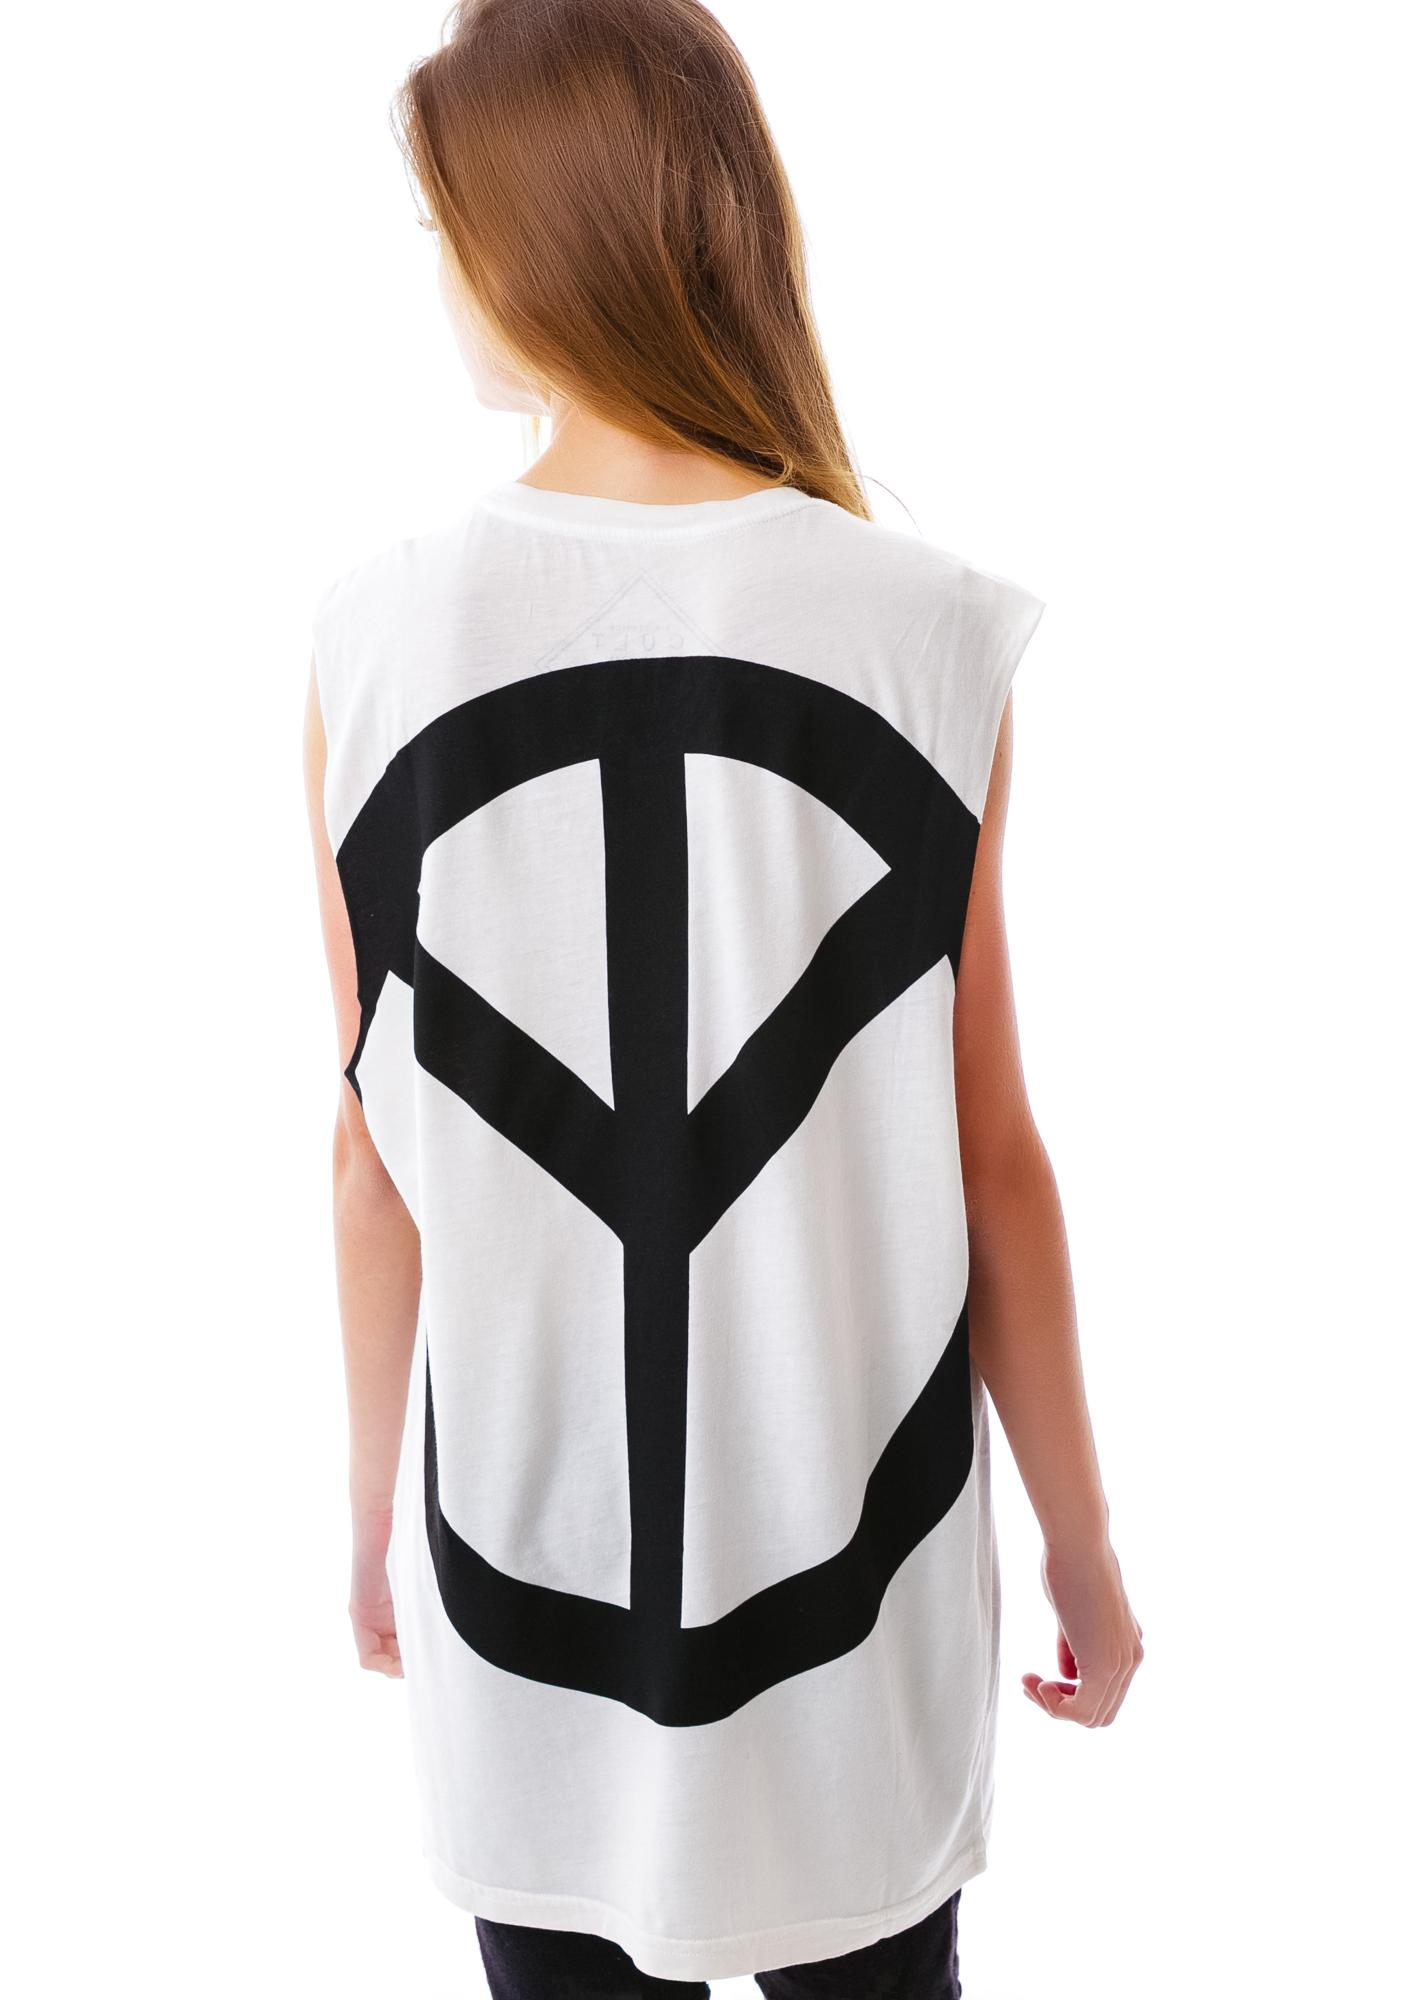 Lip Service Disturb The Peace Sleeveless Tee